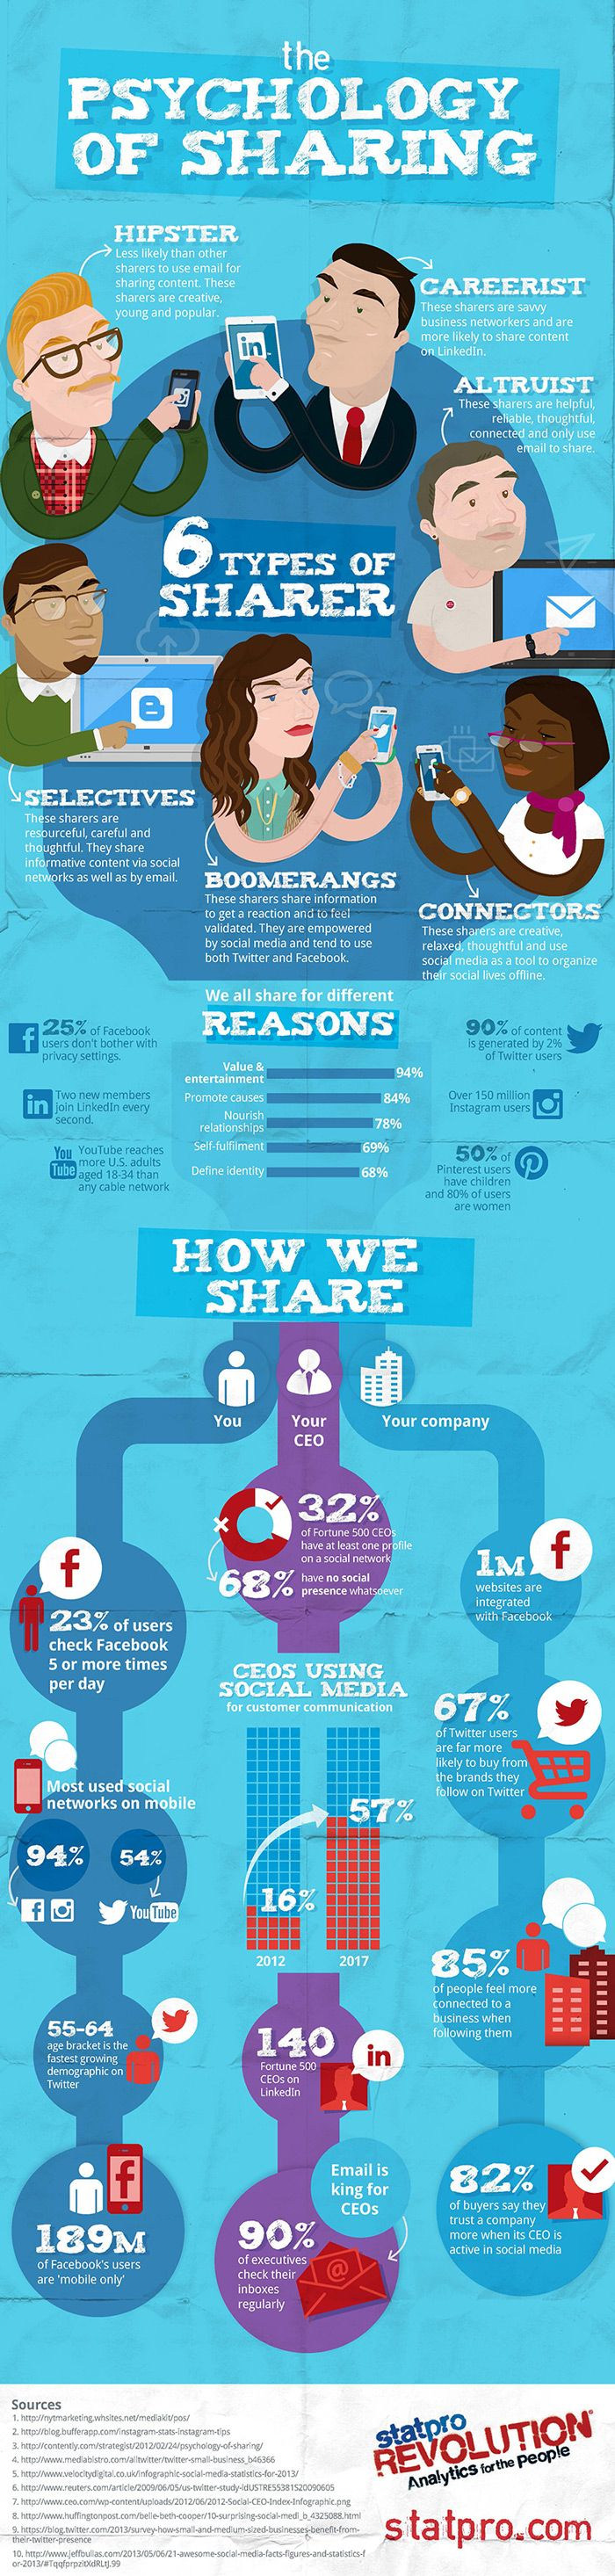 Social Media And The Psychology Of Sharing [INFOGRAPHIC]